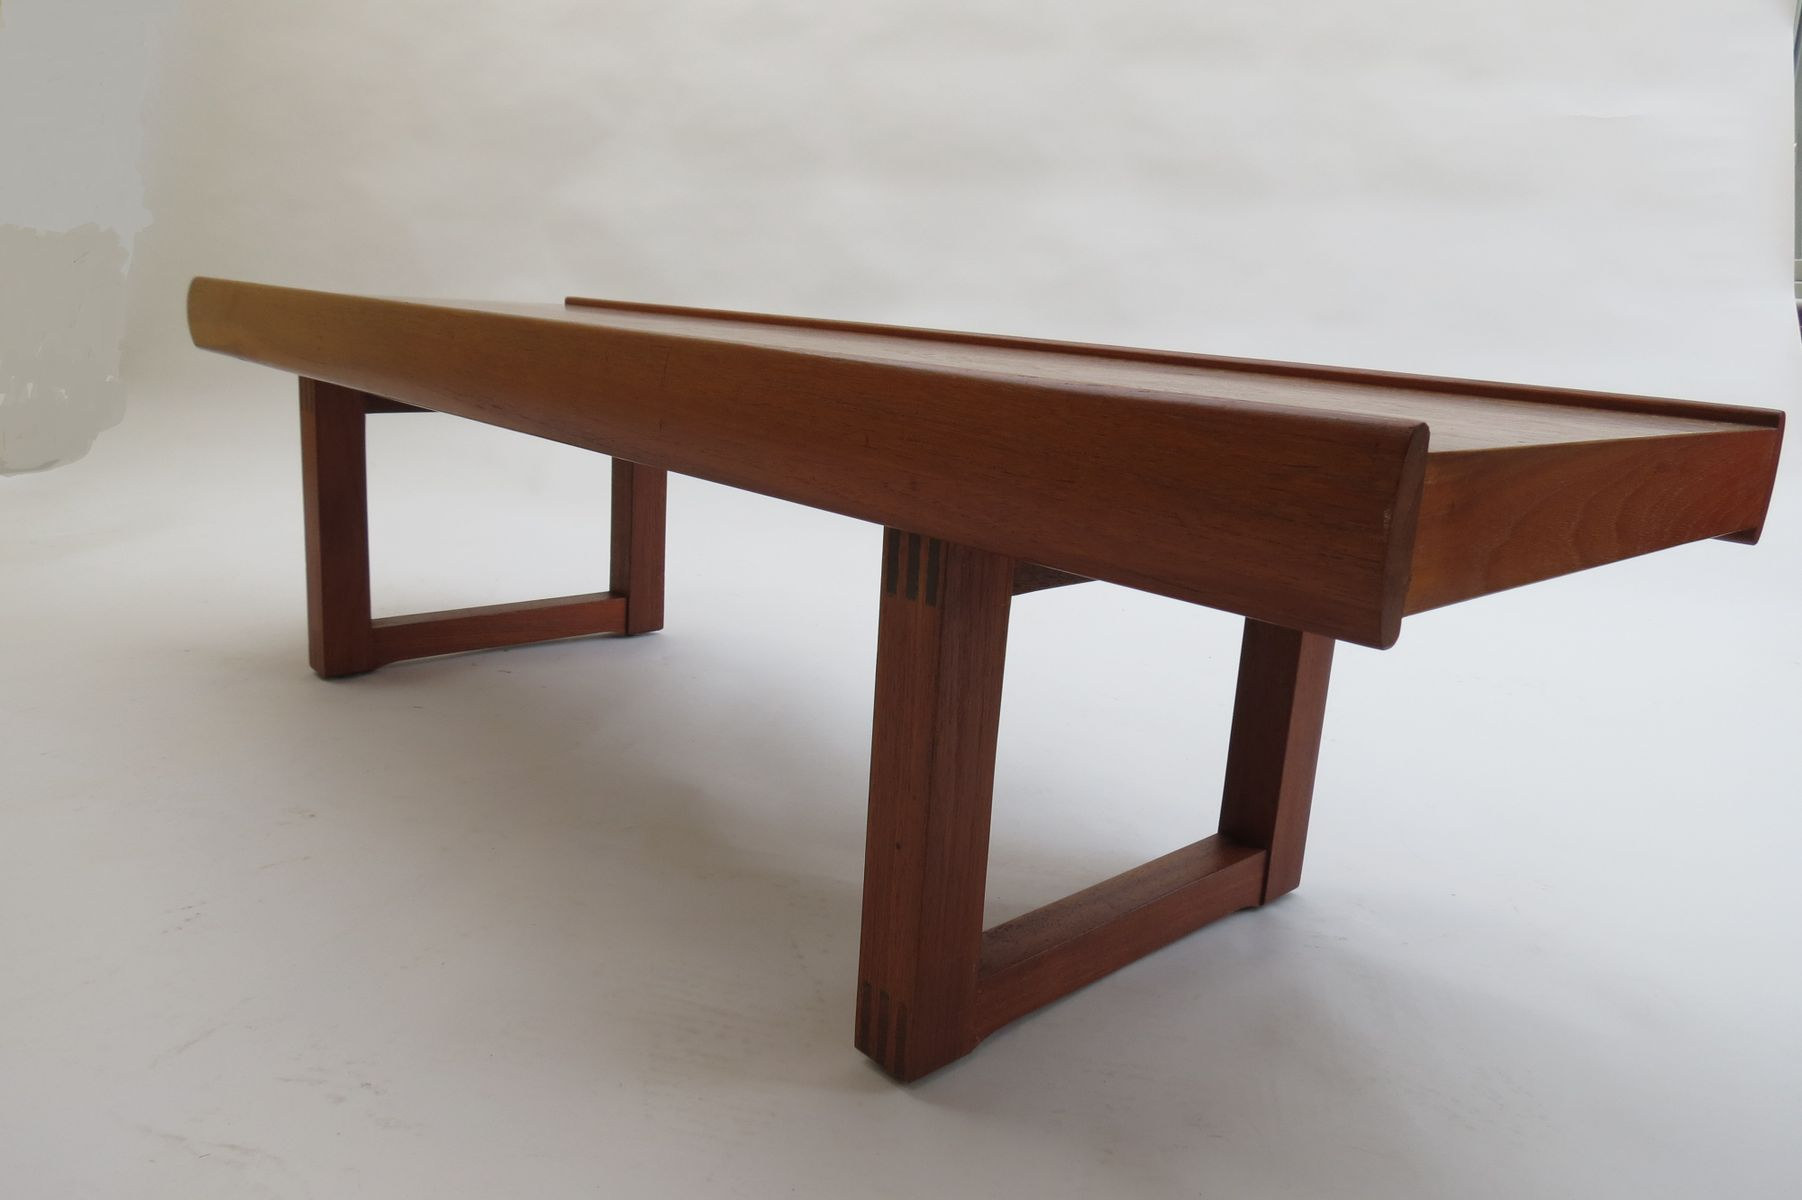 Norwegian Bruksbo Teak Coffee Table by Torbj¸rn Afdal for